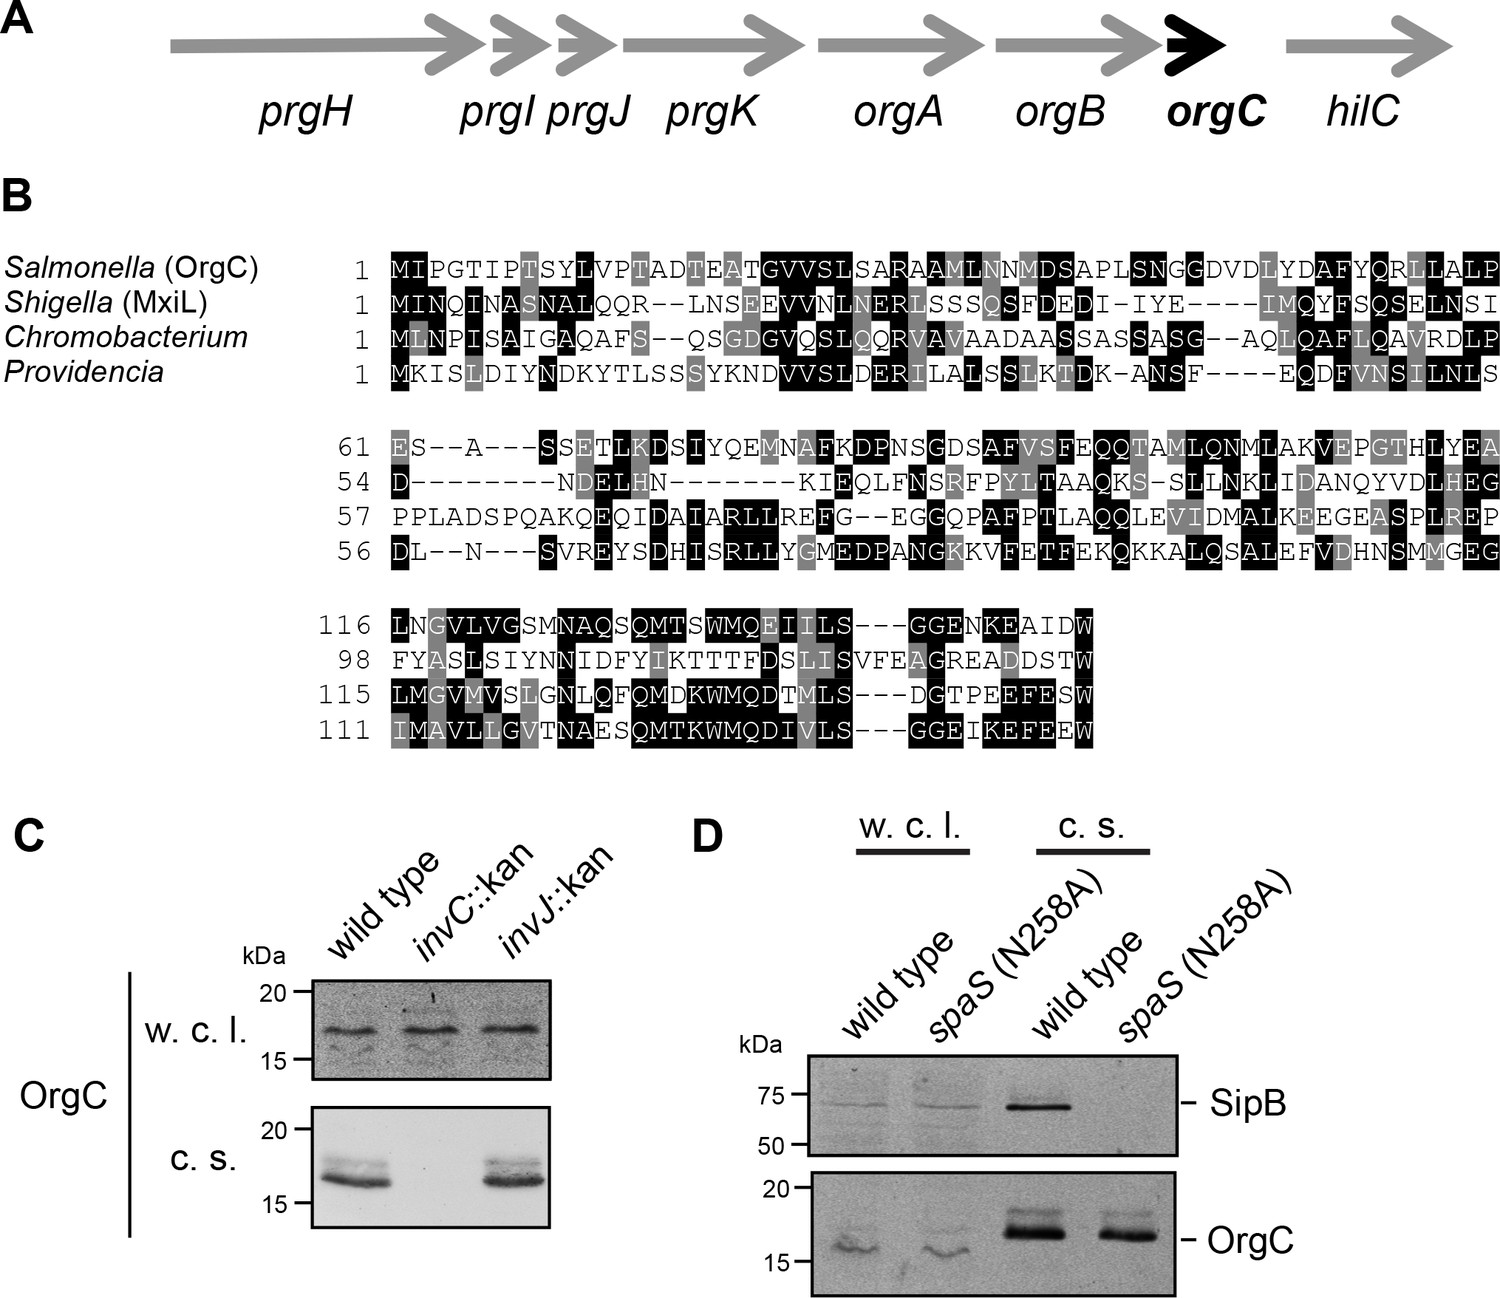 A protein secreted by the Salmonella type III secretion system